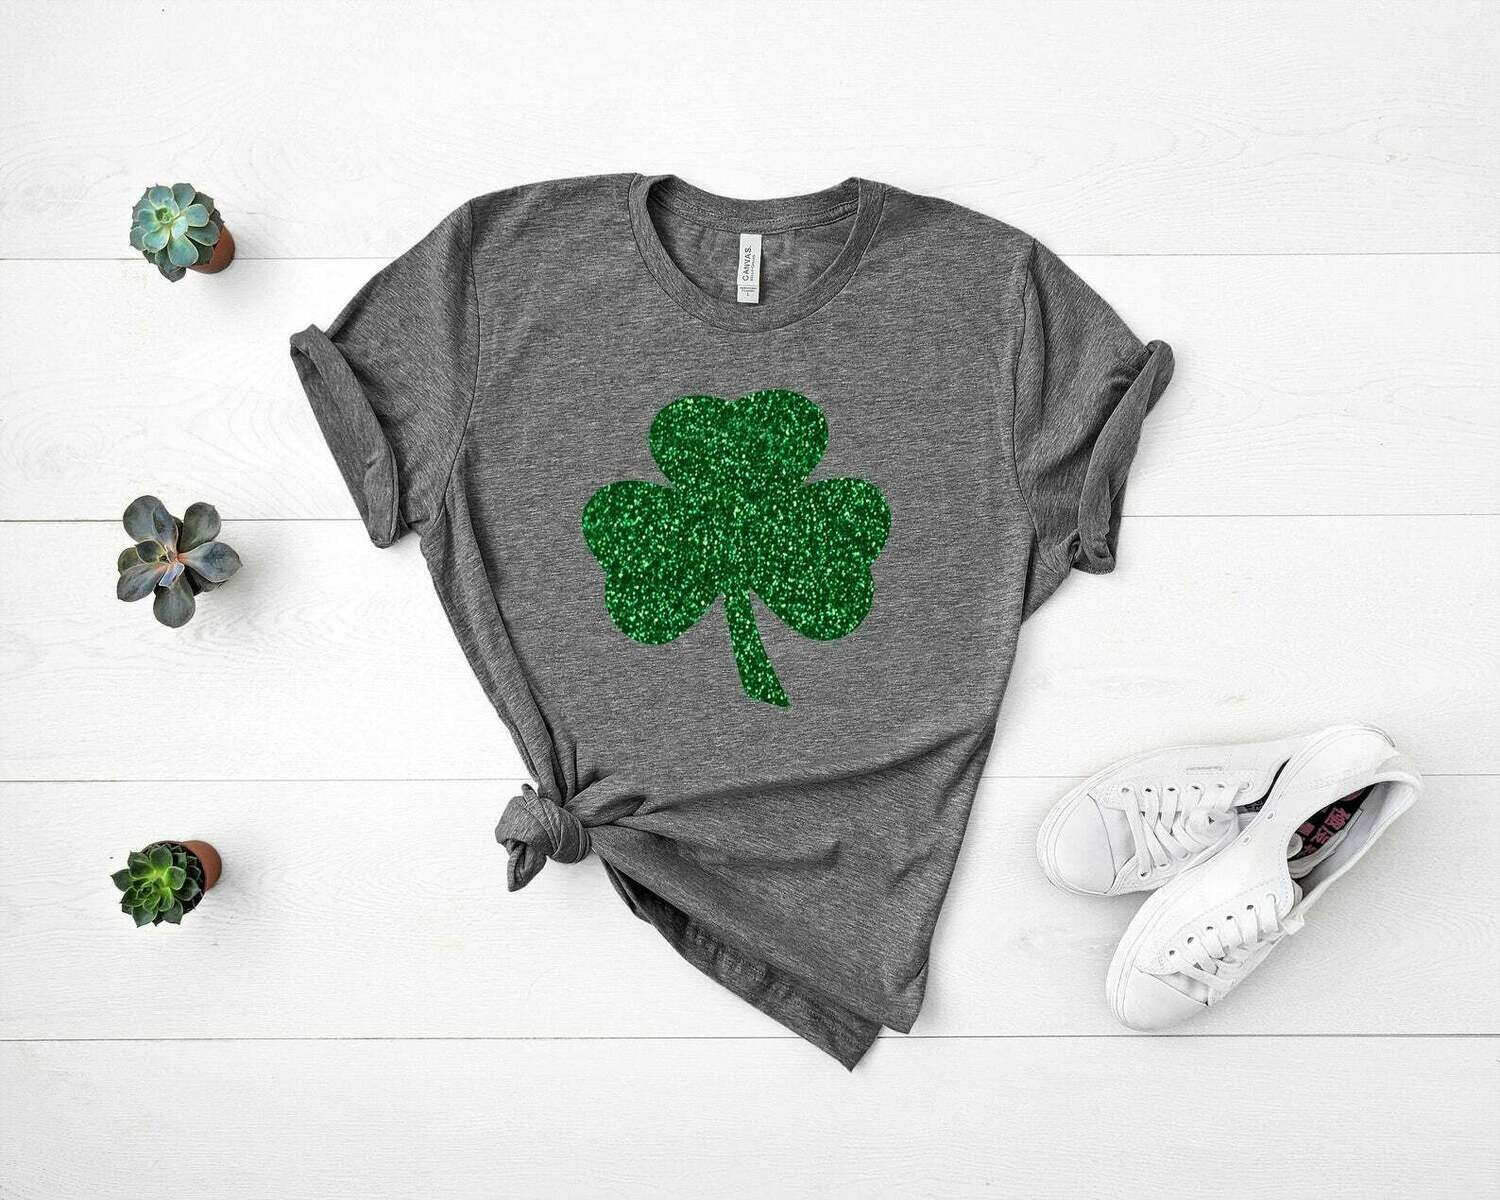 St. Patricks Day Shirt,Womens Irish Shirt,Glitter Shamrock Tee,St Patty's Day T-Shirt,St. Pattys Day Shirt,St. Patricks Day Adults,Irish